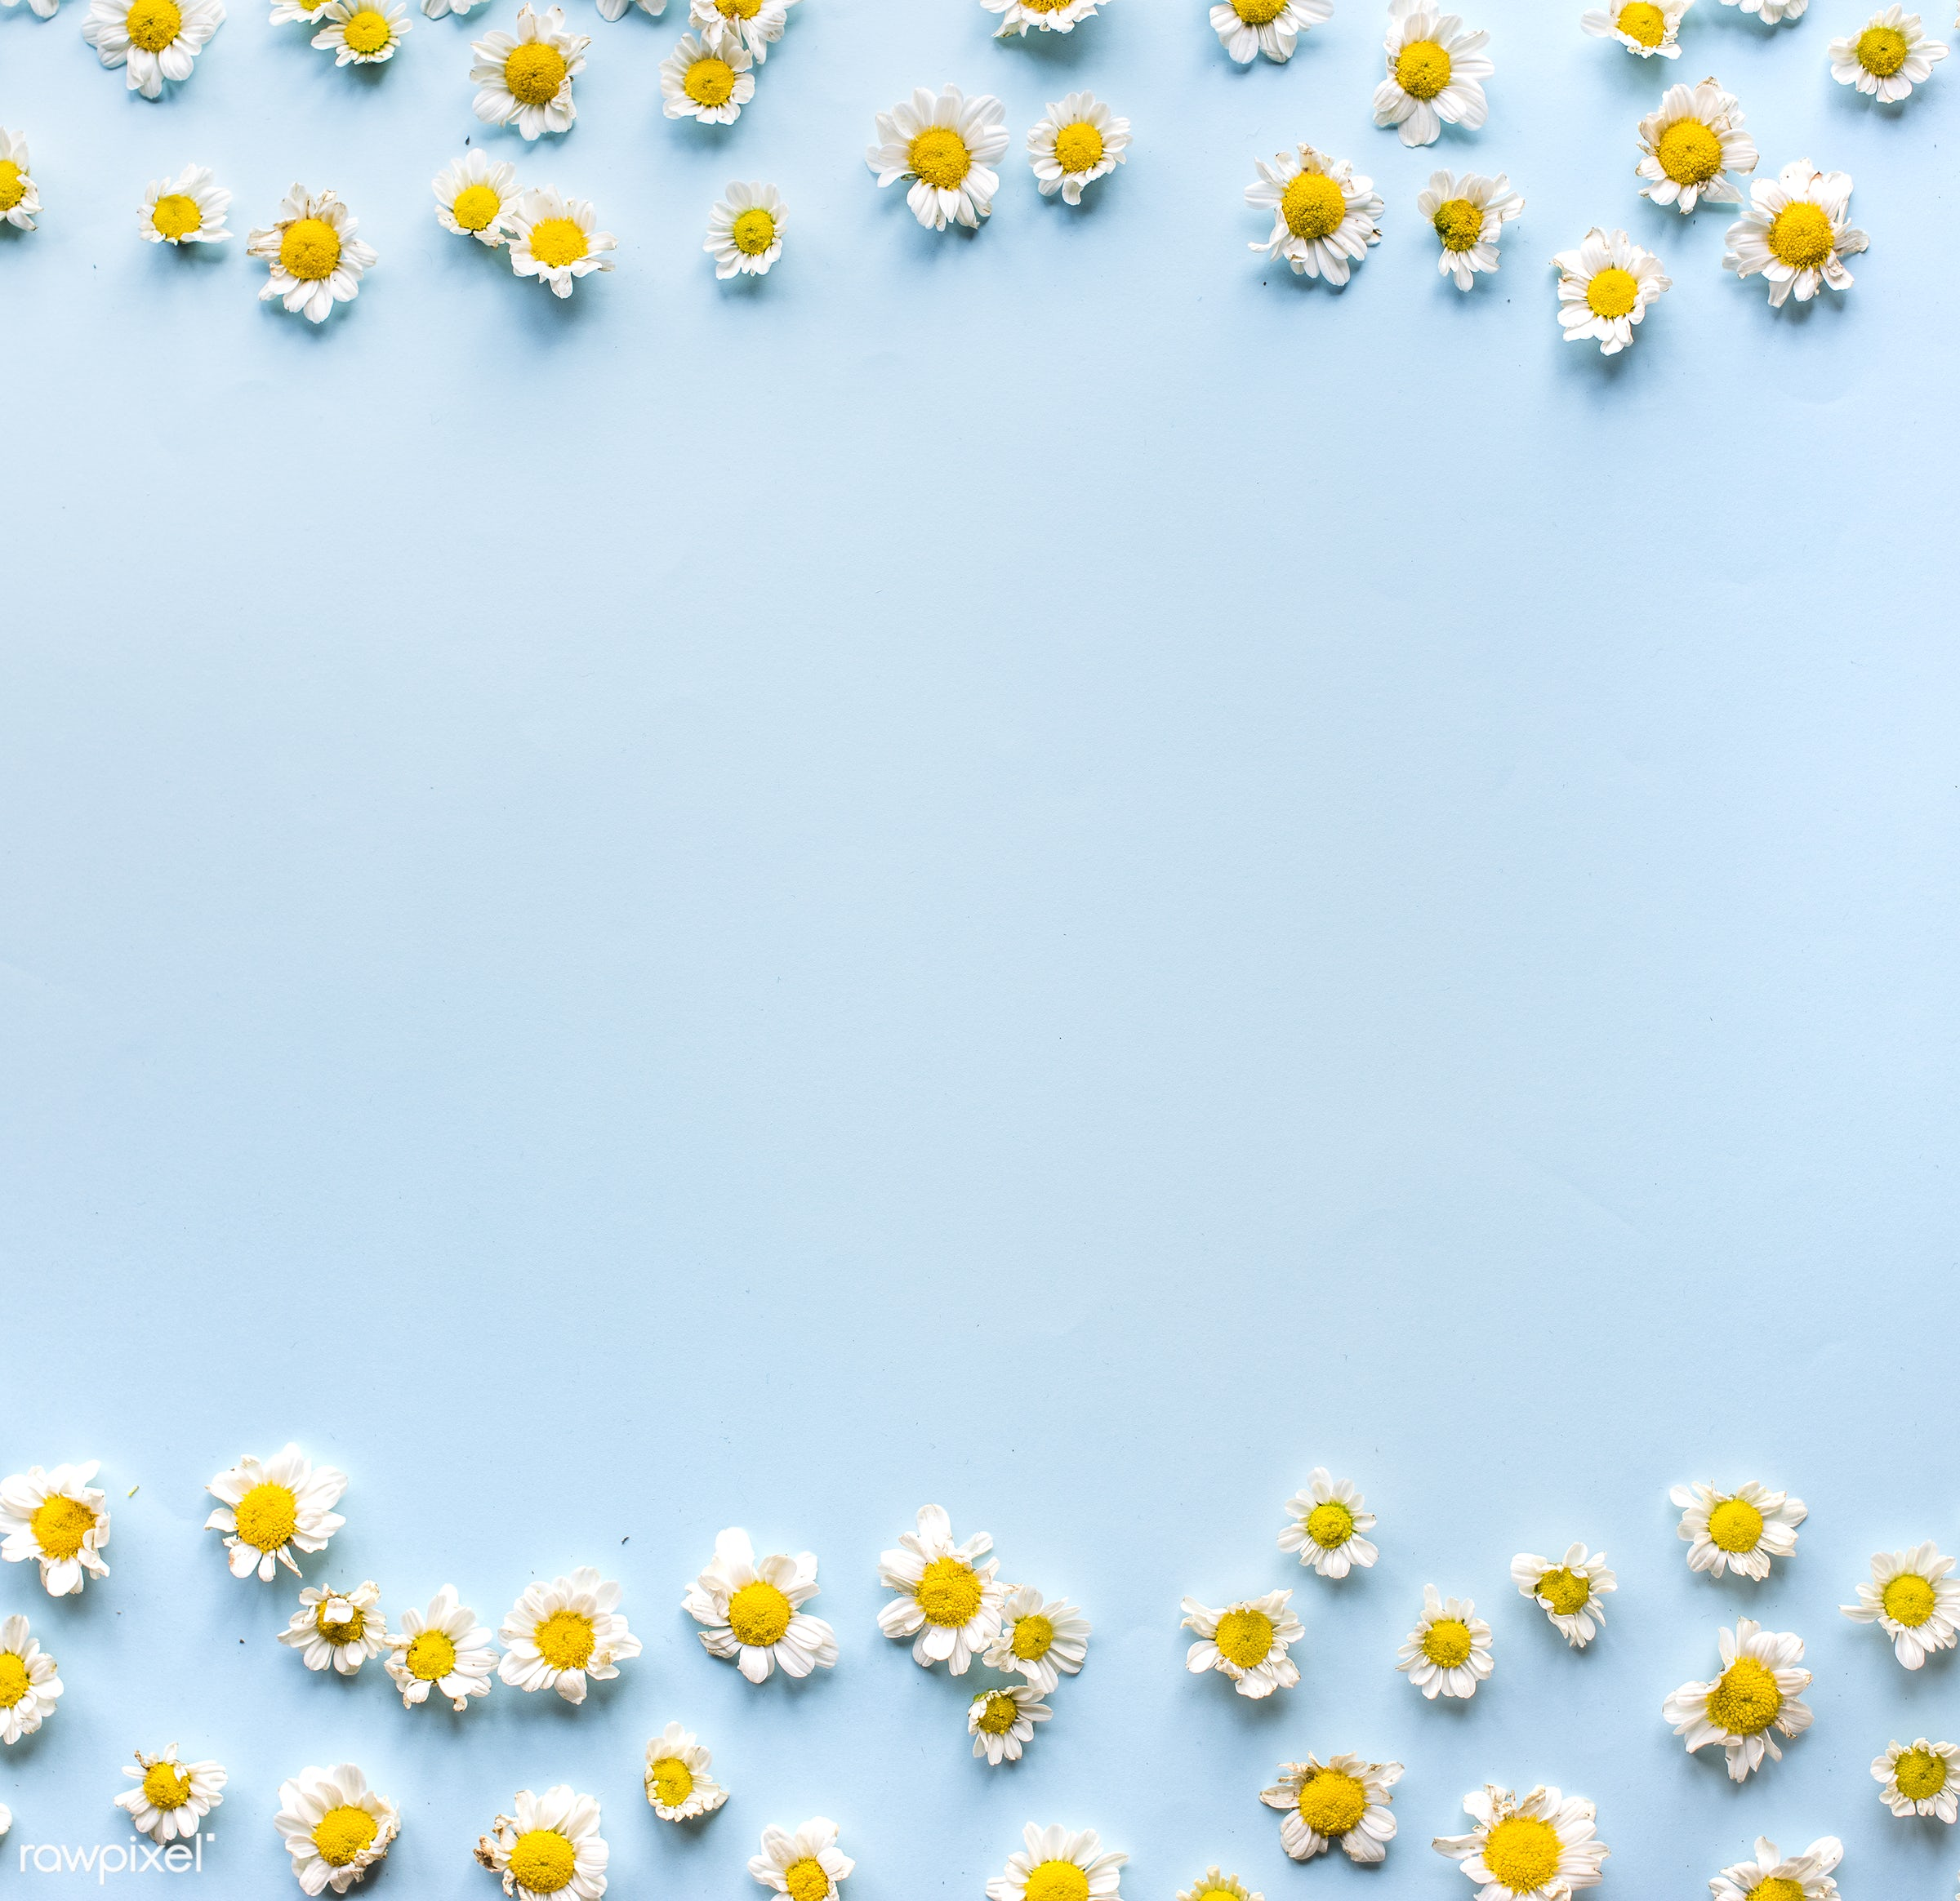 minimal, yellow, spring, nature, composition, flowers, flower, isolated, decorate, lay, white, frame, pattern, summer,...